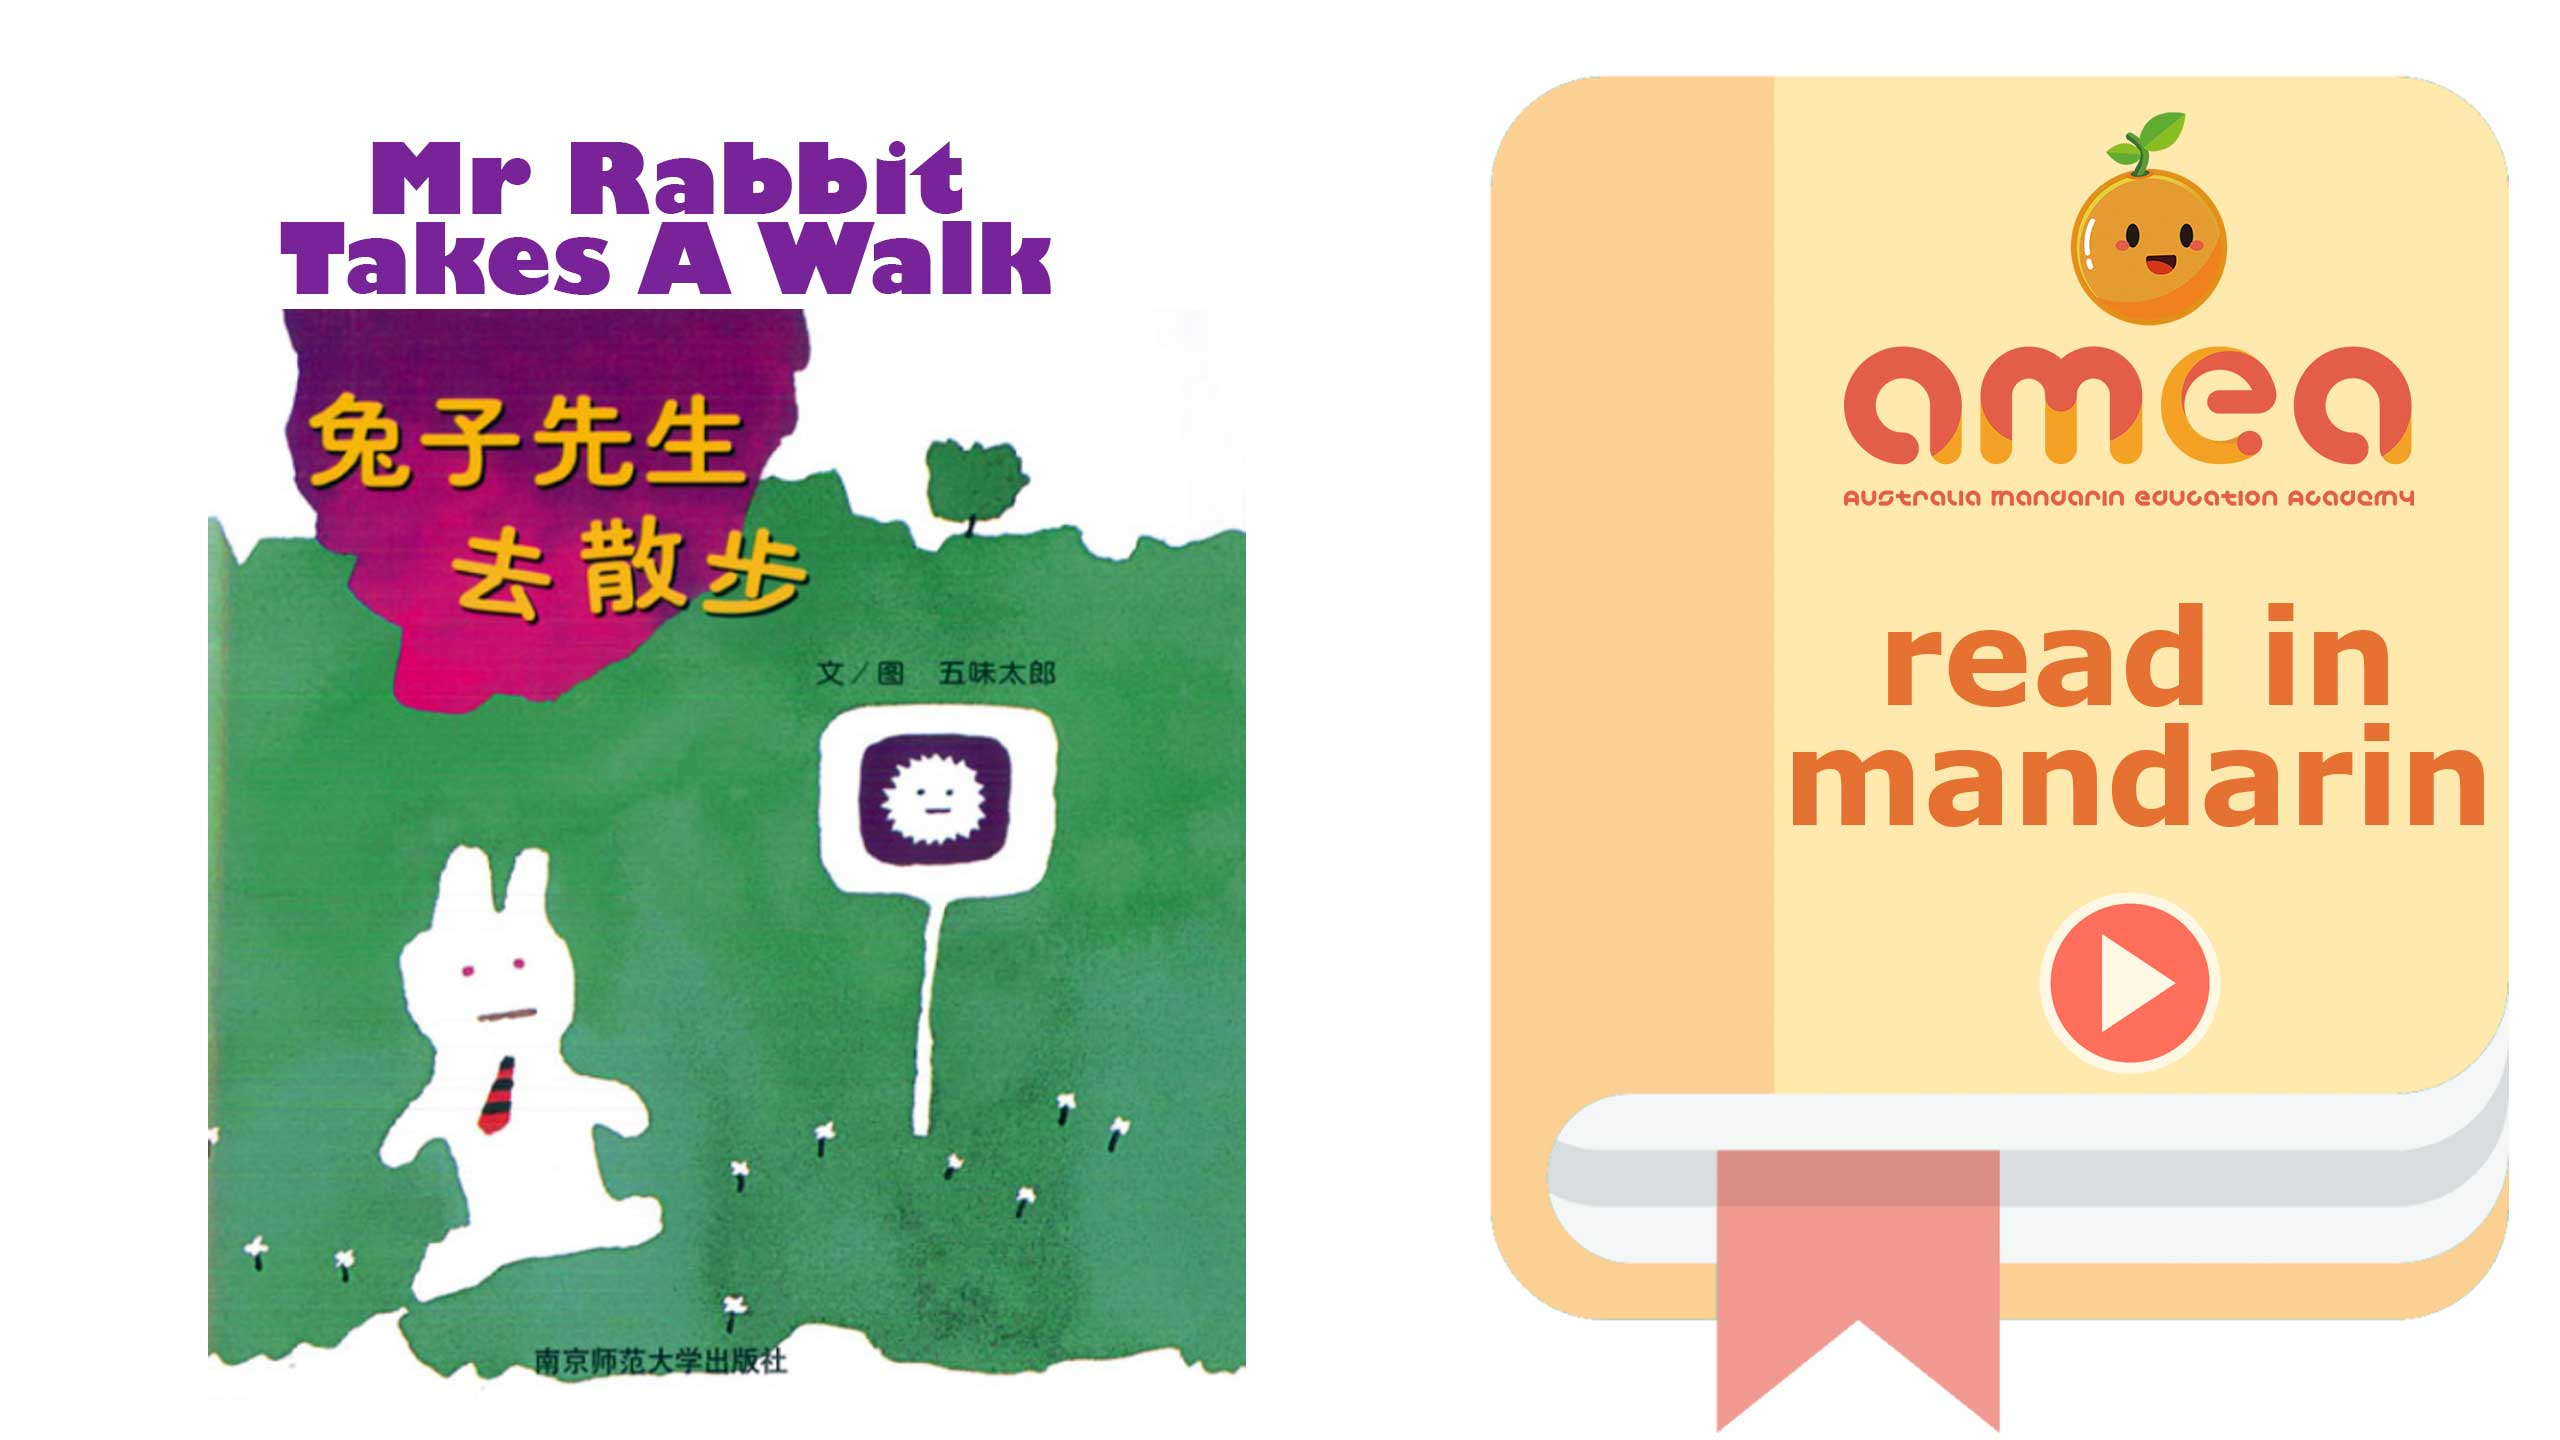 Mr Rabbit Takes A Walk - Read in Mandarin